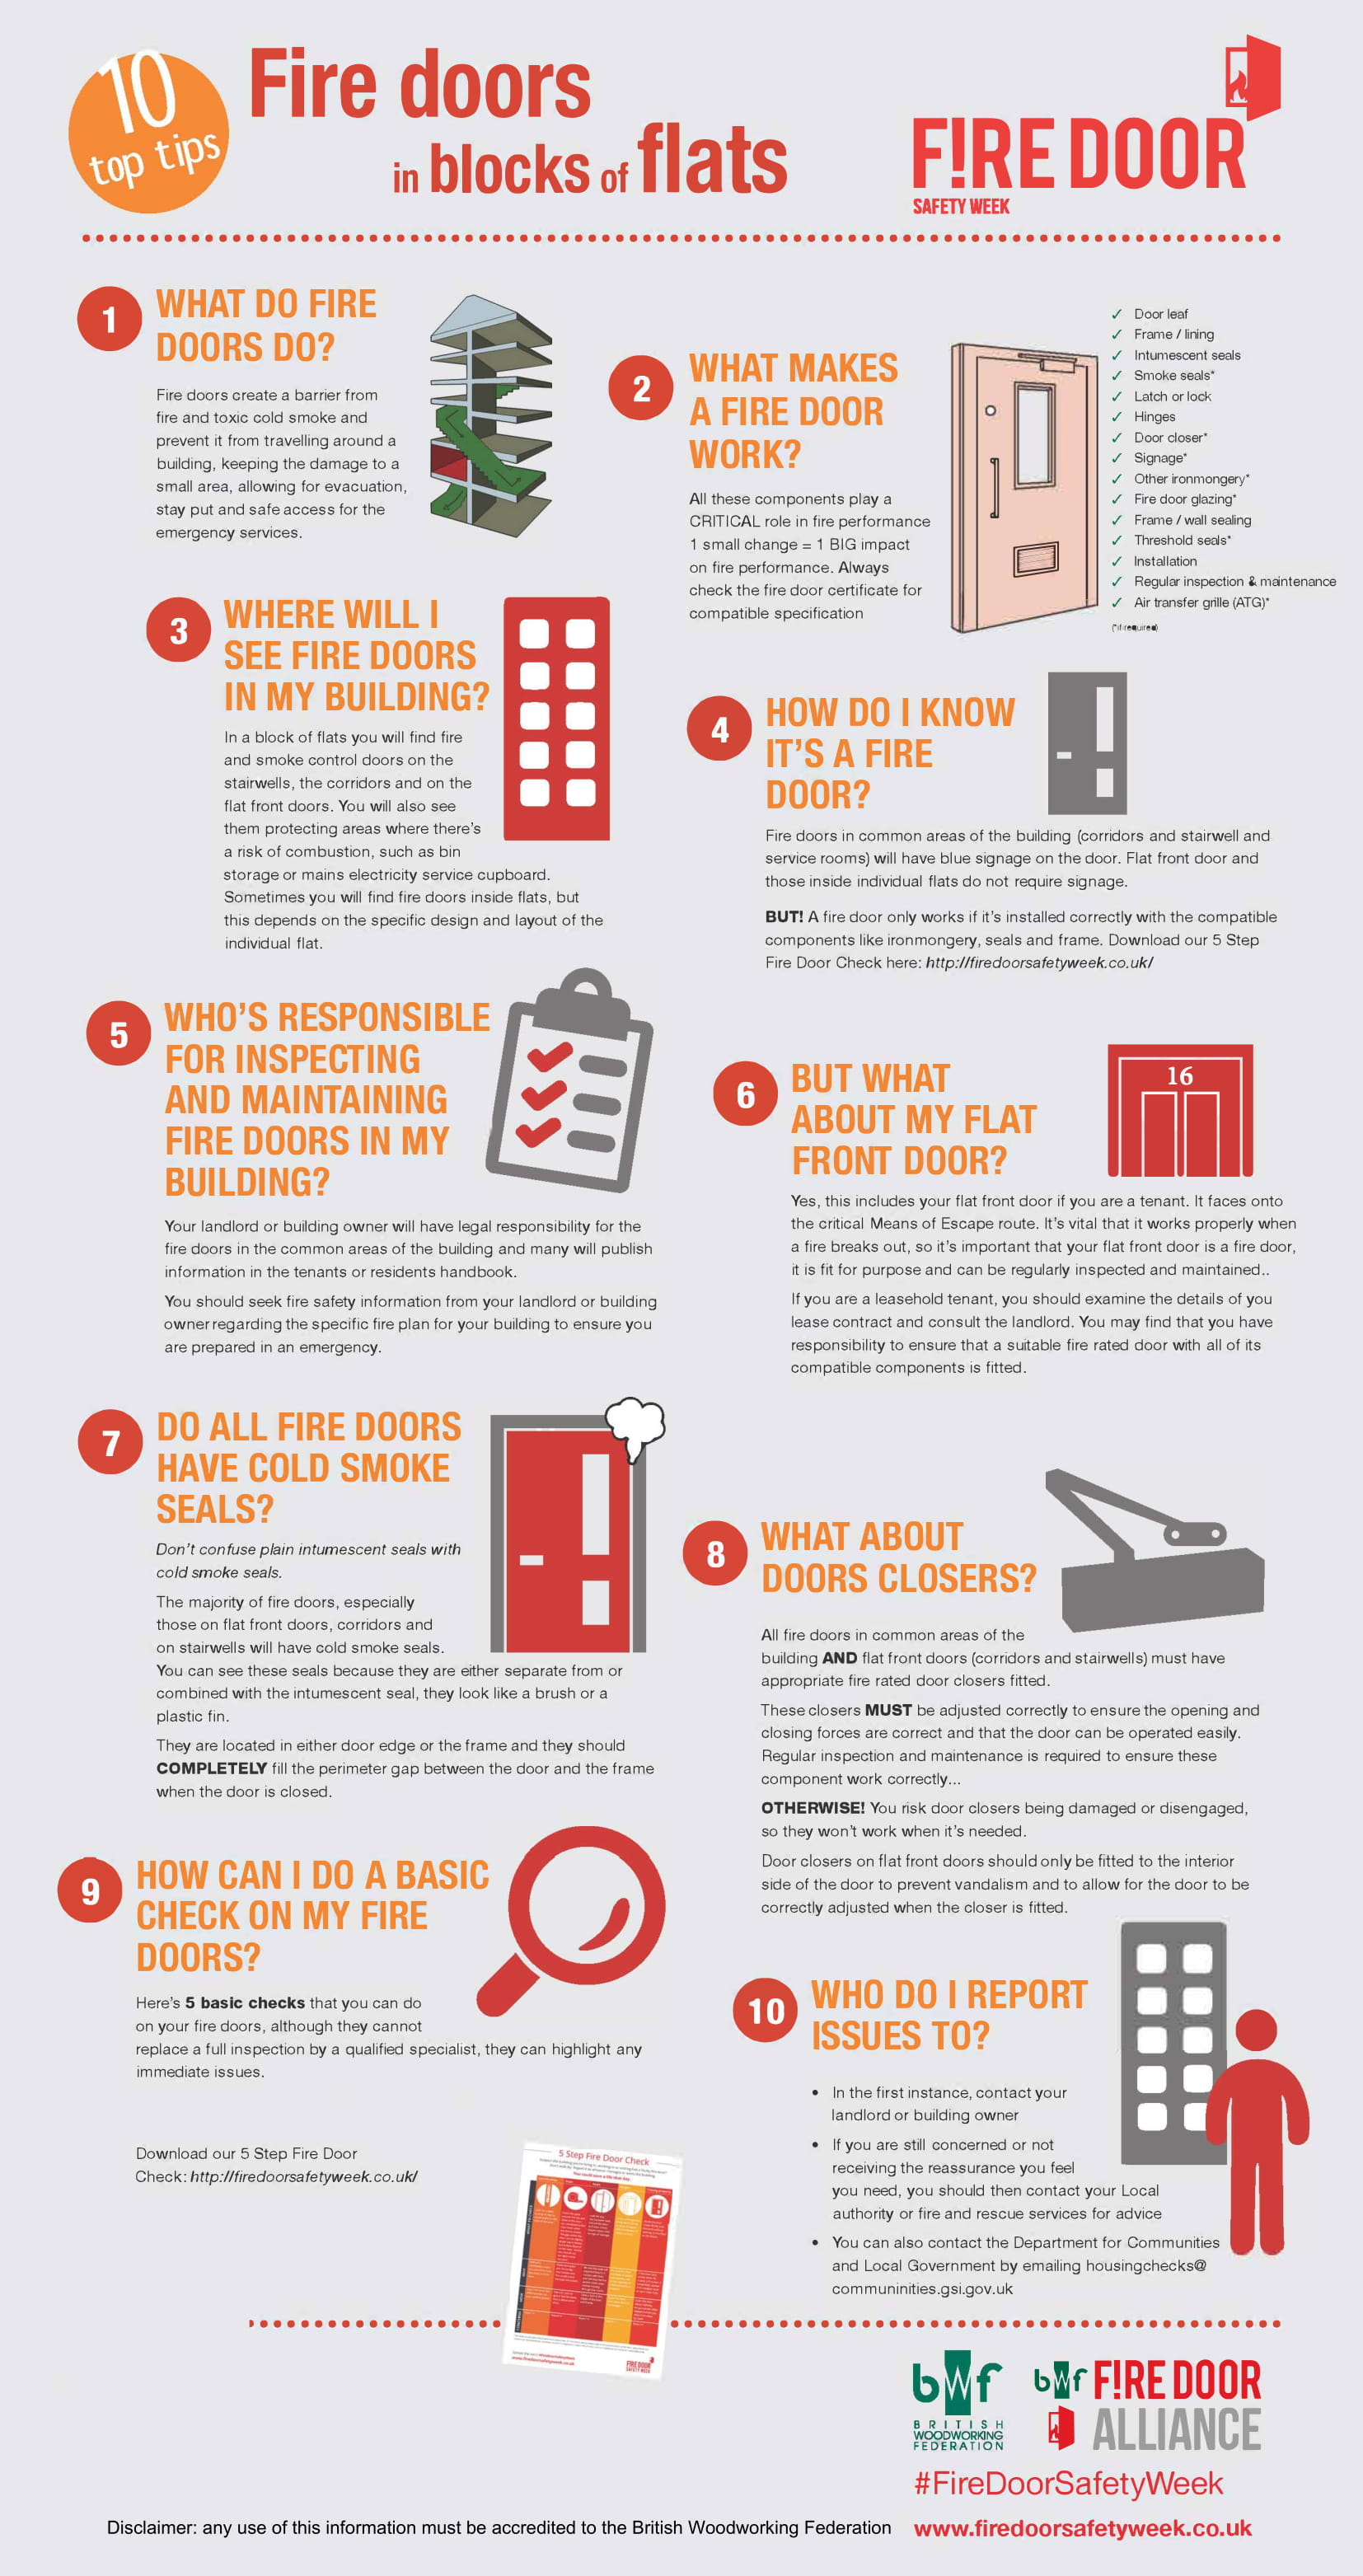 10-top-tips-for-fire-doors-in-flats